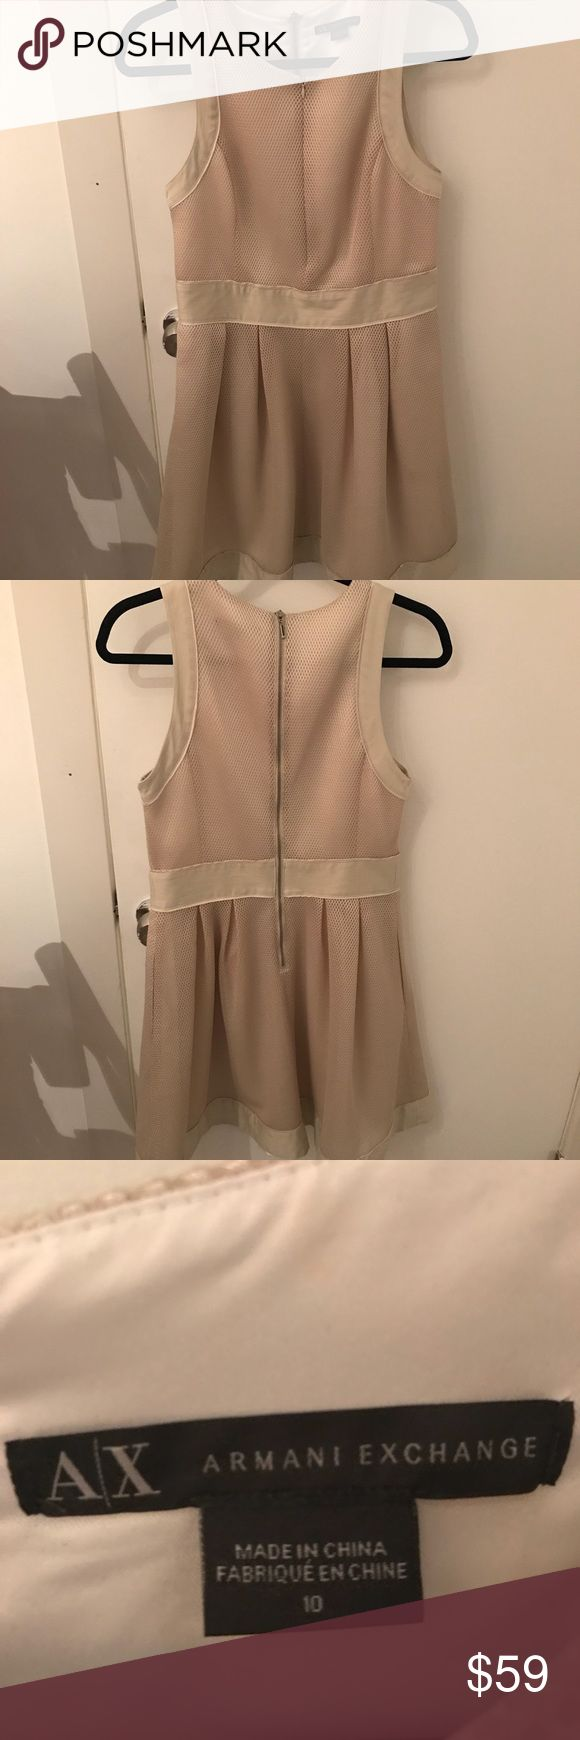 A/X Armani Exchange fit and flare dress New, never worn WOT dress. Gorgeous metallic light gold, with zippers down the front and back. A/X Armani Exchange Dresses